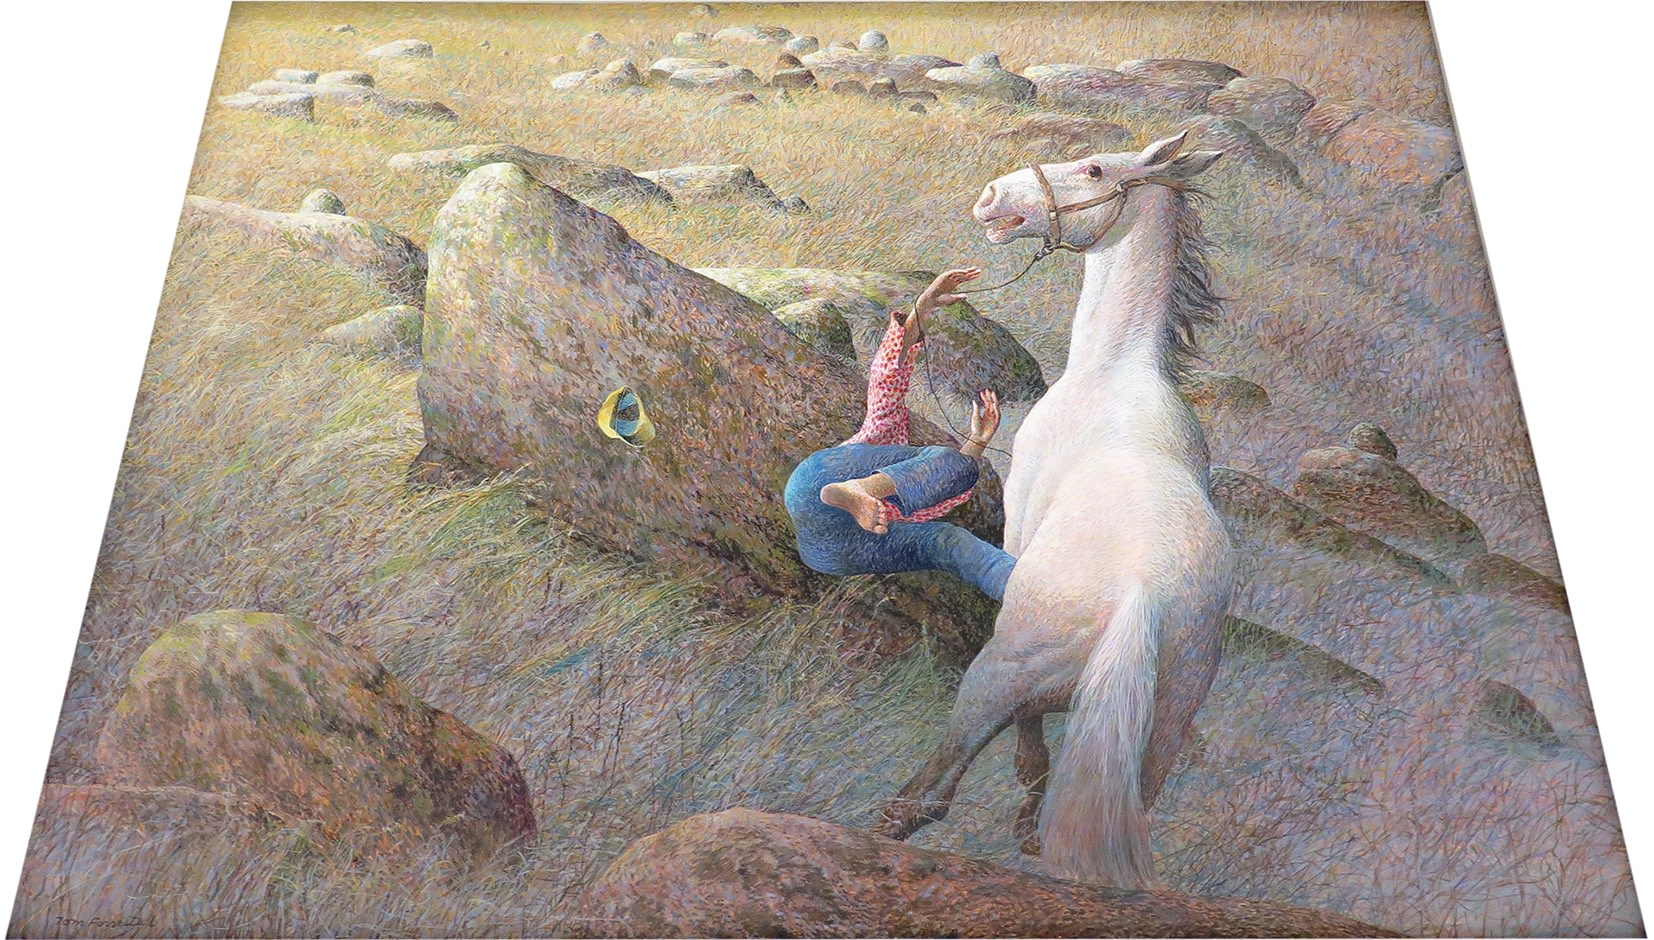 Tom Forrestall, C.M., R.C.A. 1936- Out of the Headlands / Falling Rider / Startled Horse / Give it Your Own Title - TF, 2003